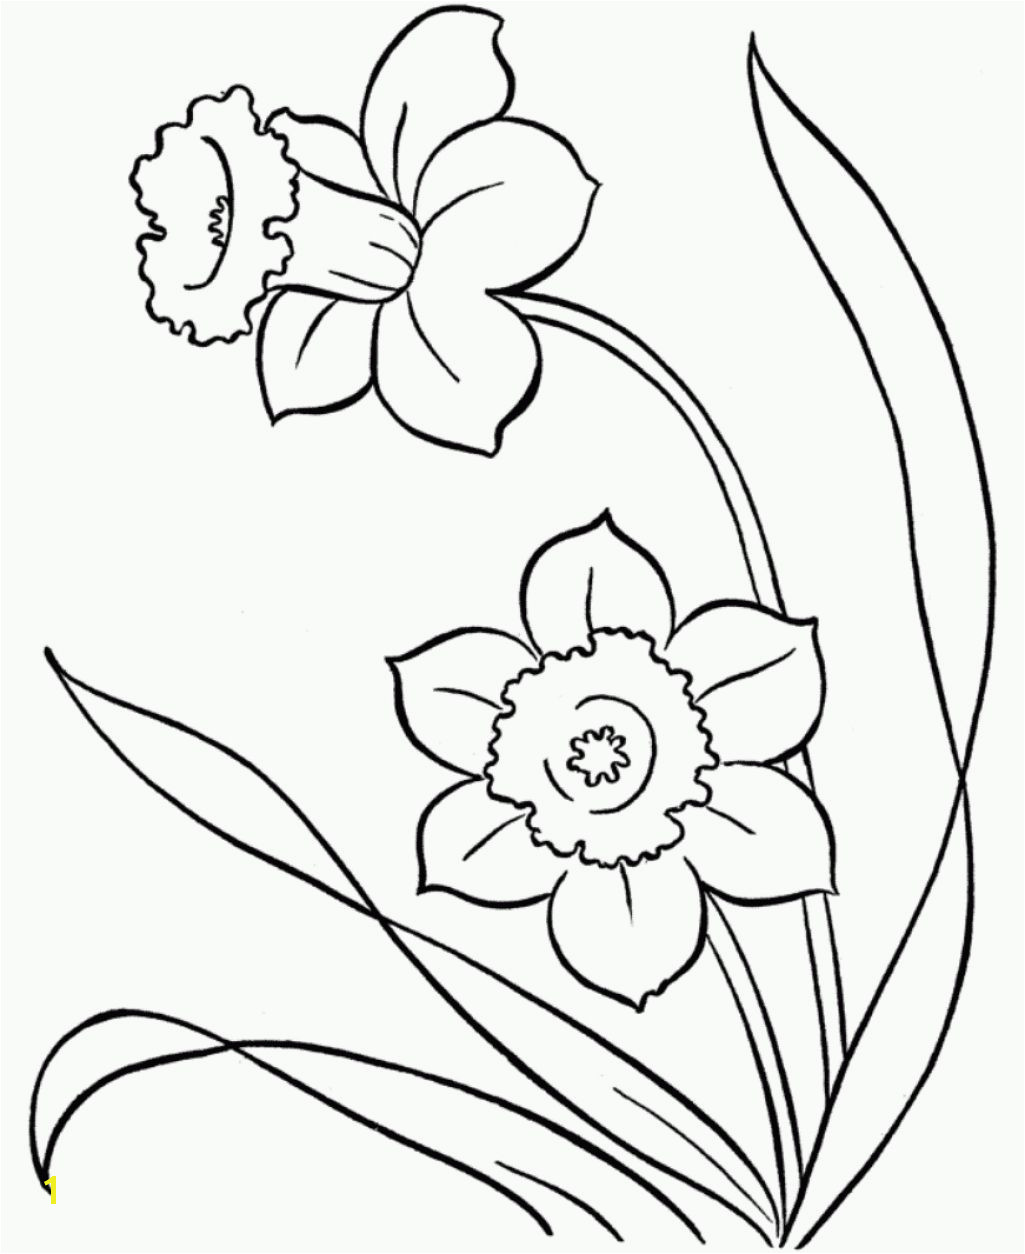 Snowdrop Coloring Pages Line Drawings Of Snowdrops Google Search